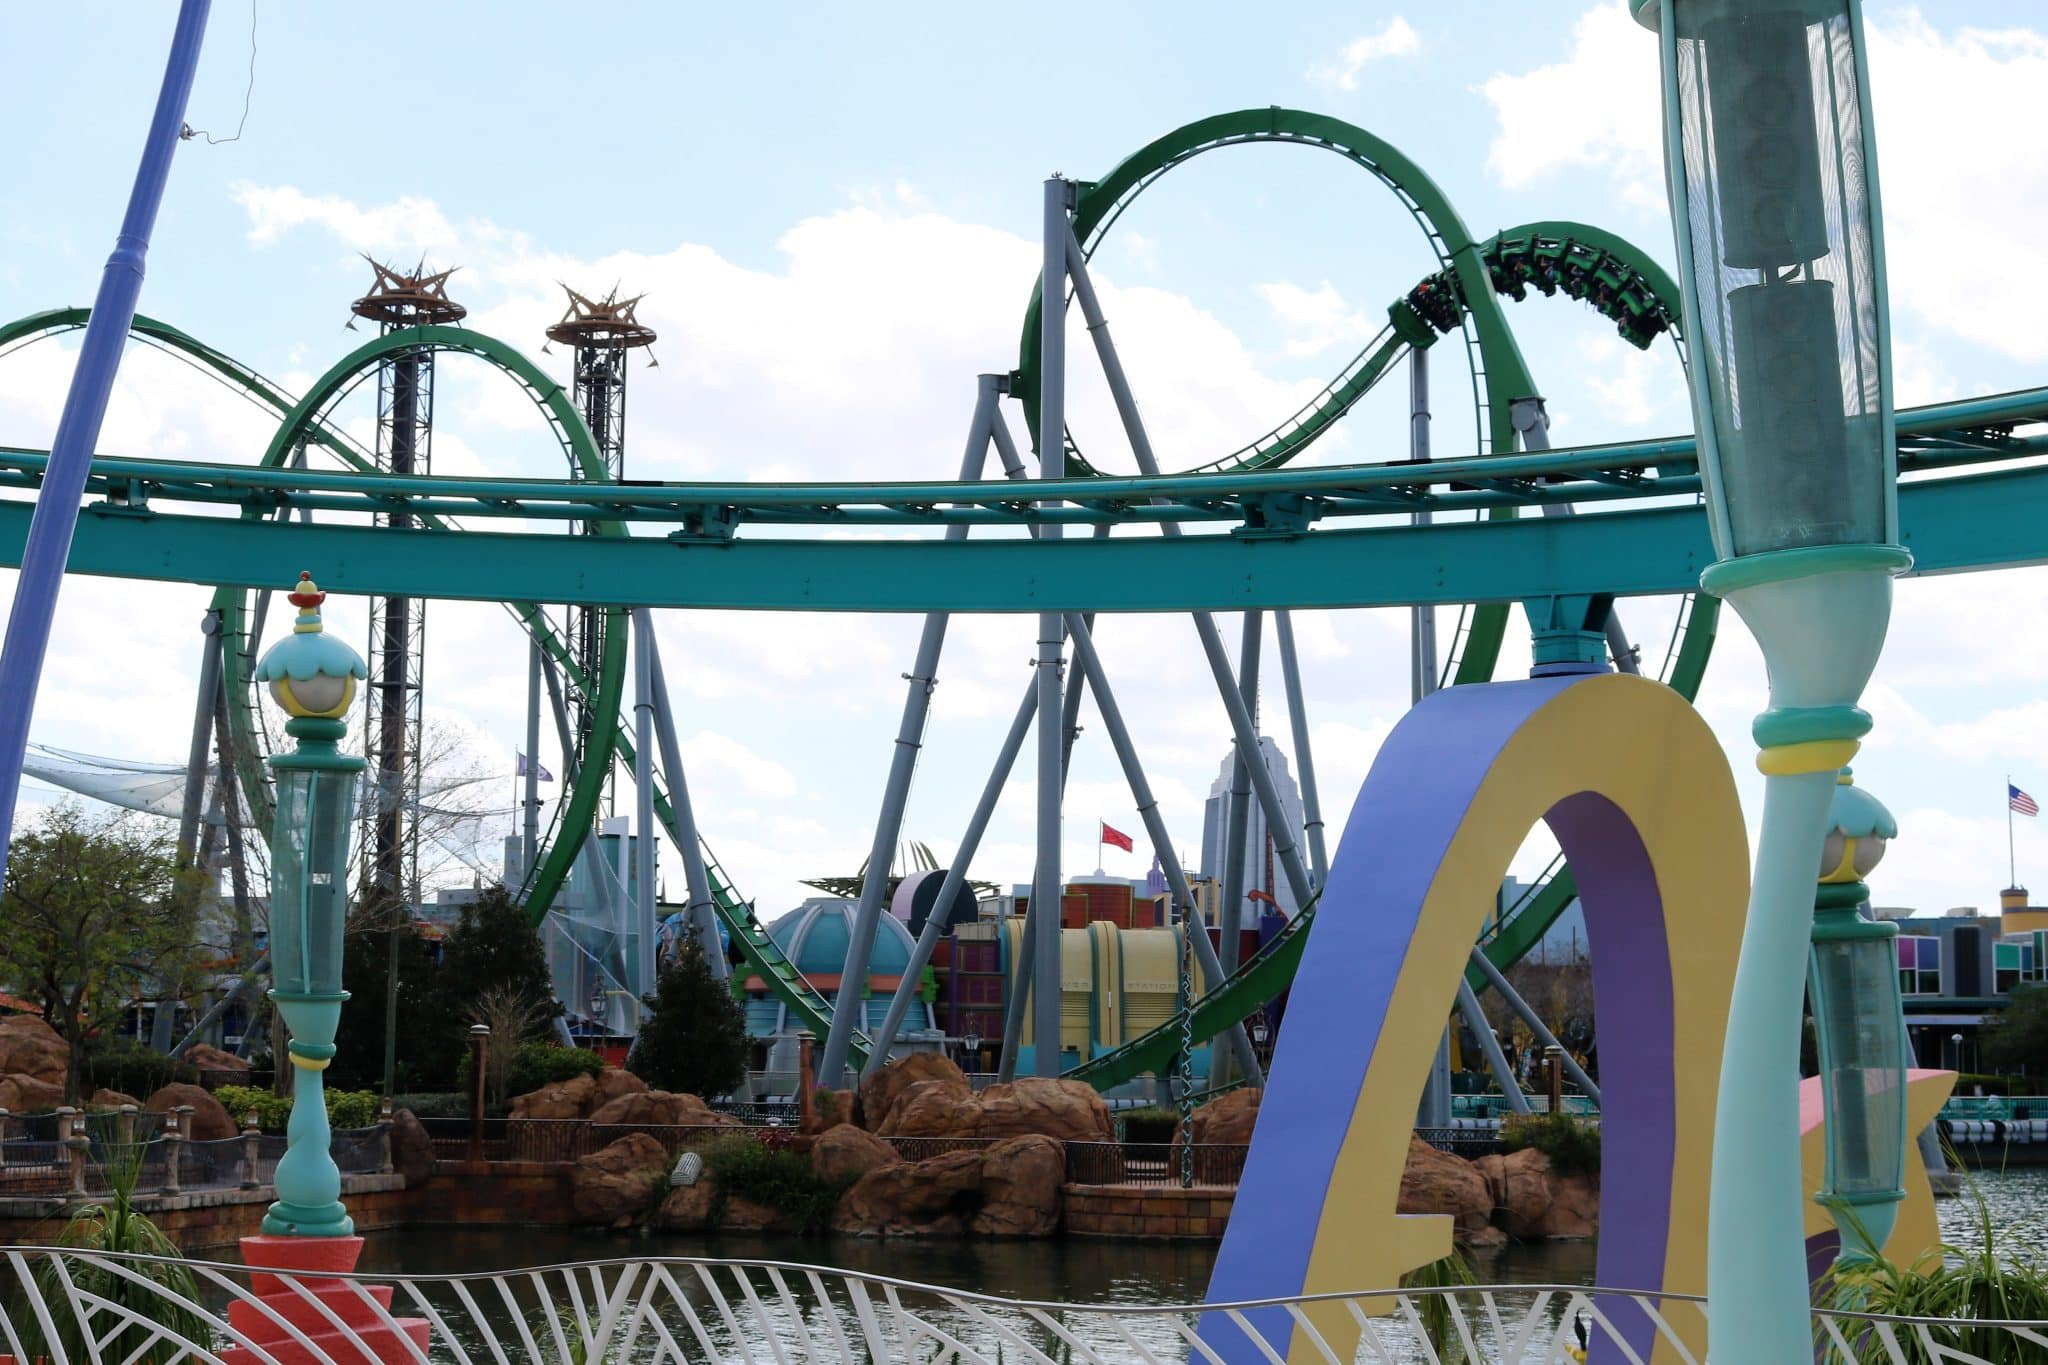 View of the Incredible Hulk Coaster from Seuss Landing